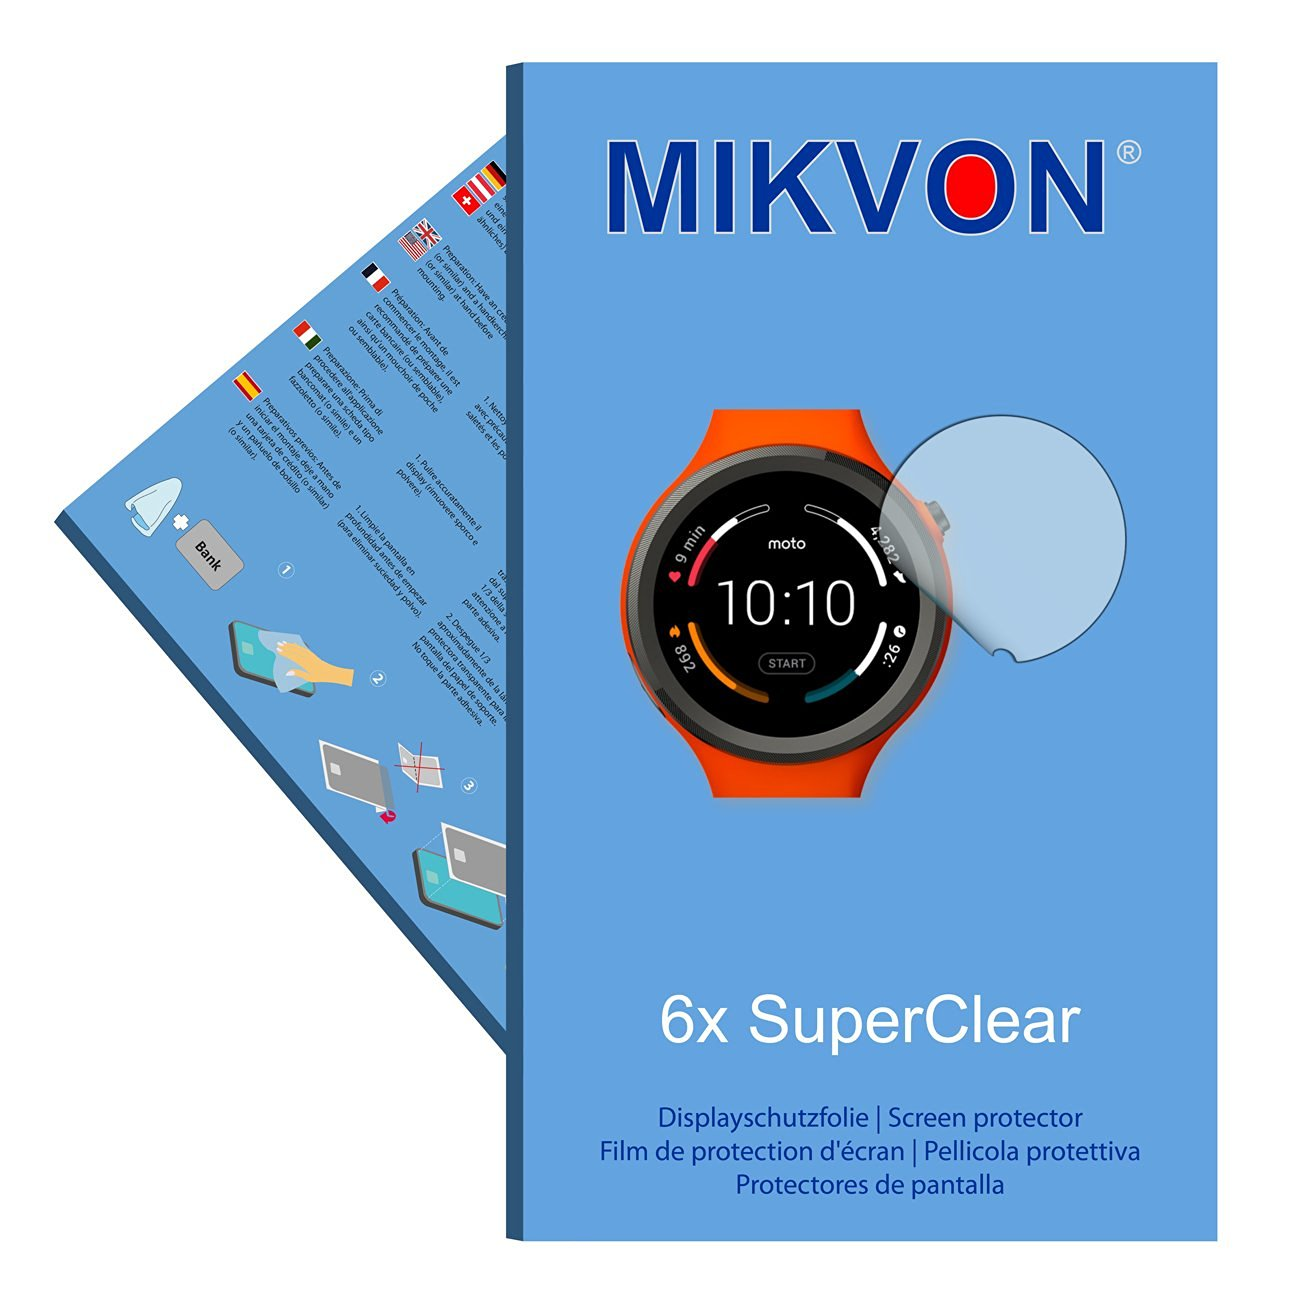 6x Mikvon films screen protector SuperClear for Motorola Moto 360 Sport Smartwatch - transparent - Made in Germany (intentionally smaller than the display due to its curved surface)